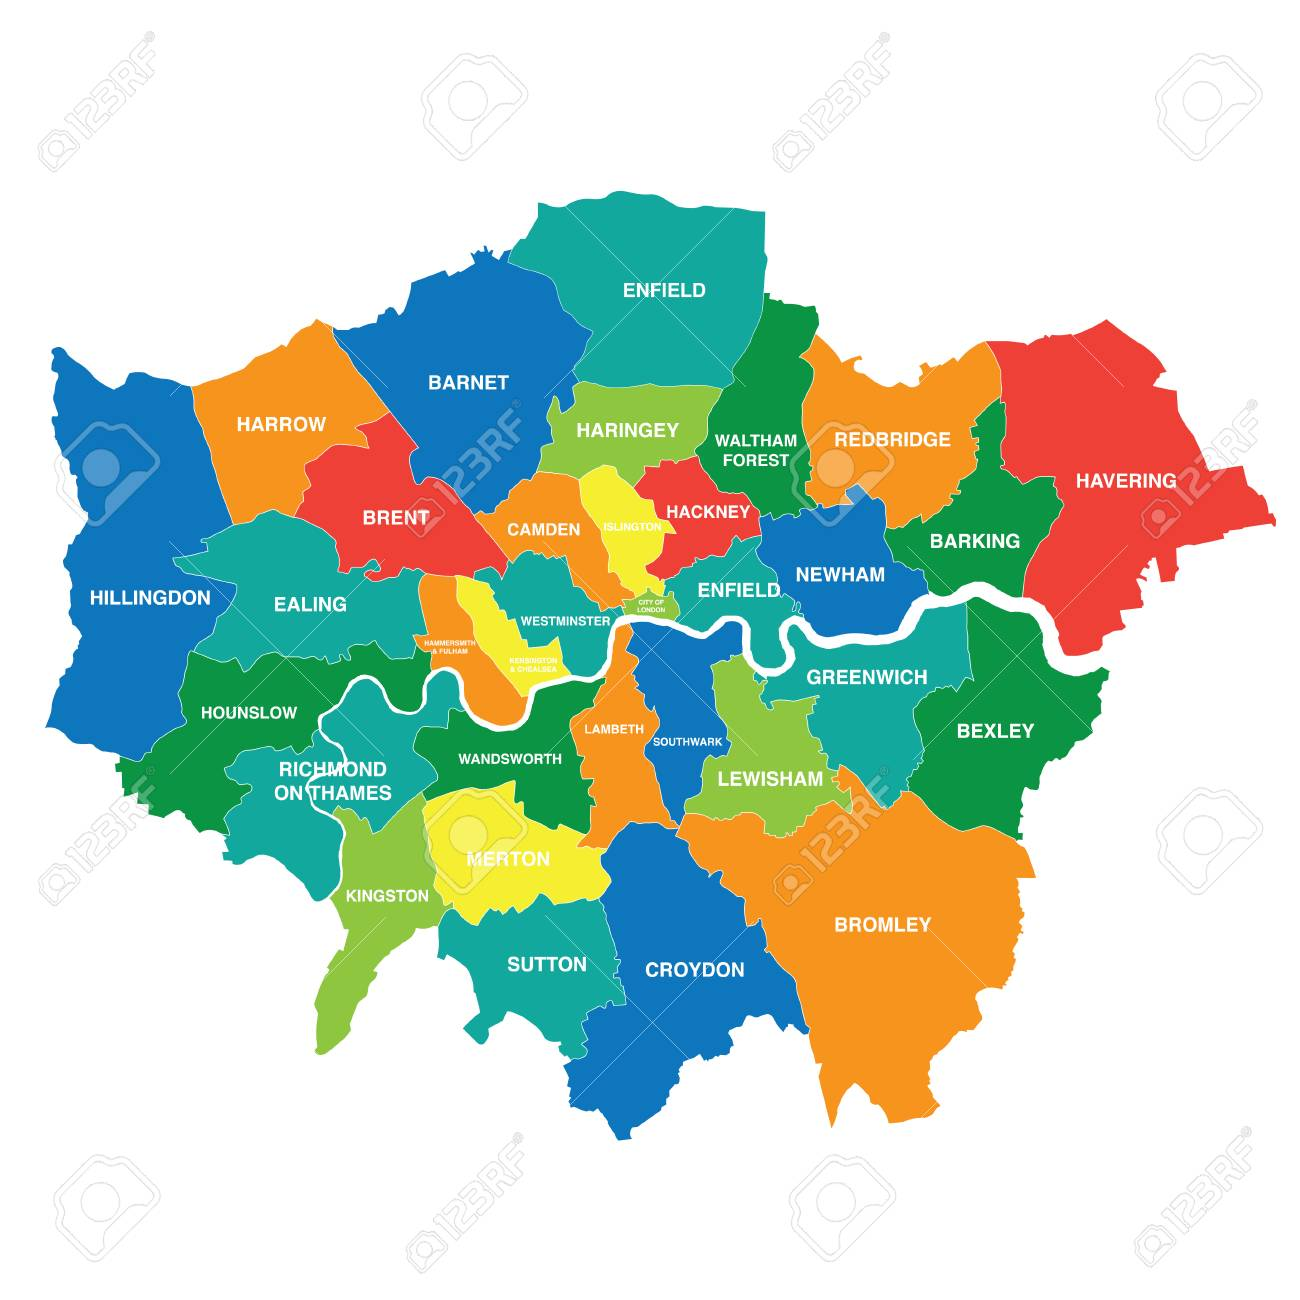 Map Of Greater London Area.Greater London Map Showing All Boroughs